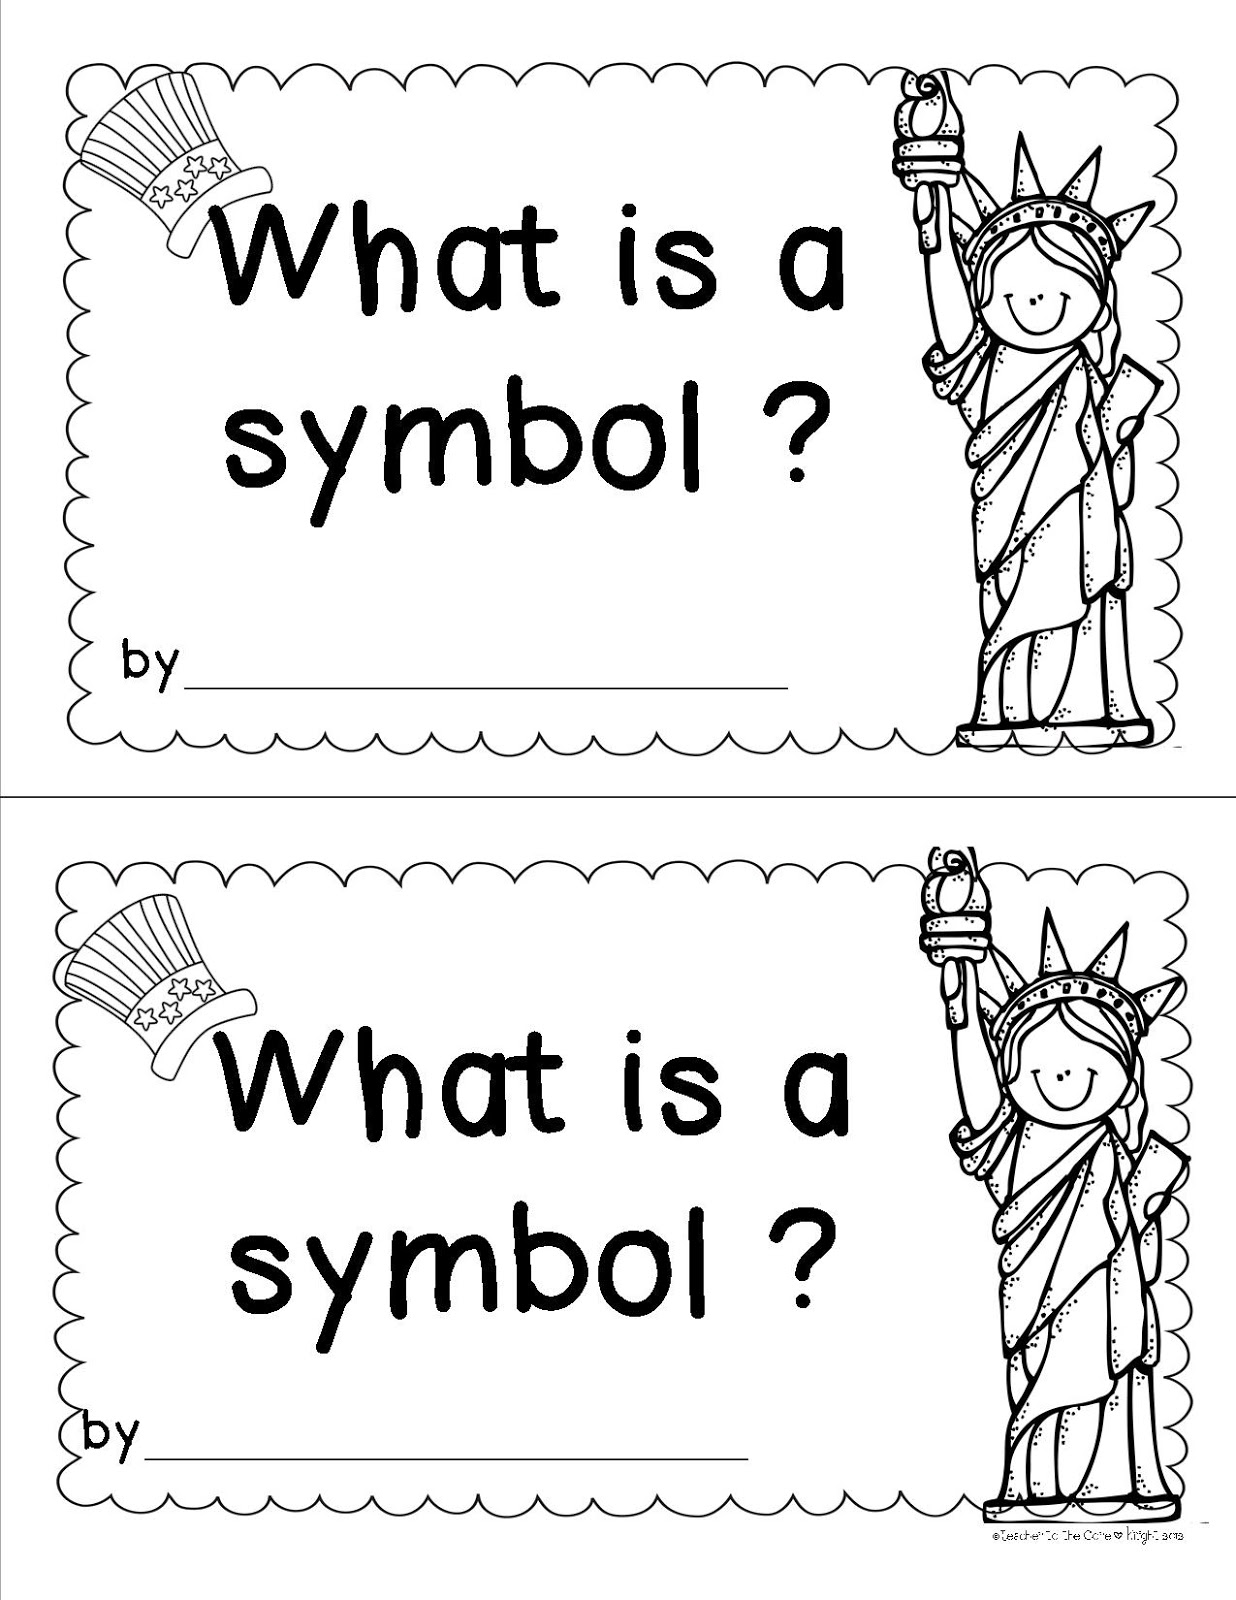 u s symbols coloring pages - photo #50